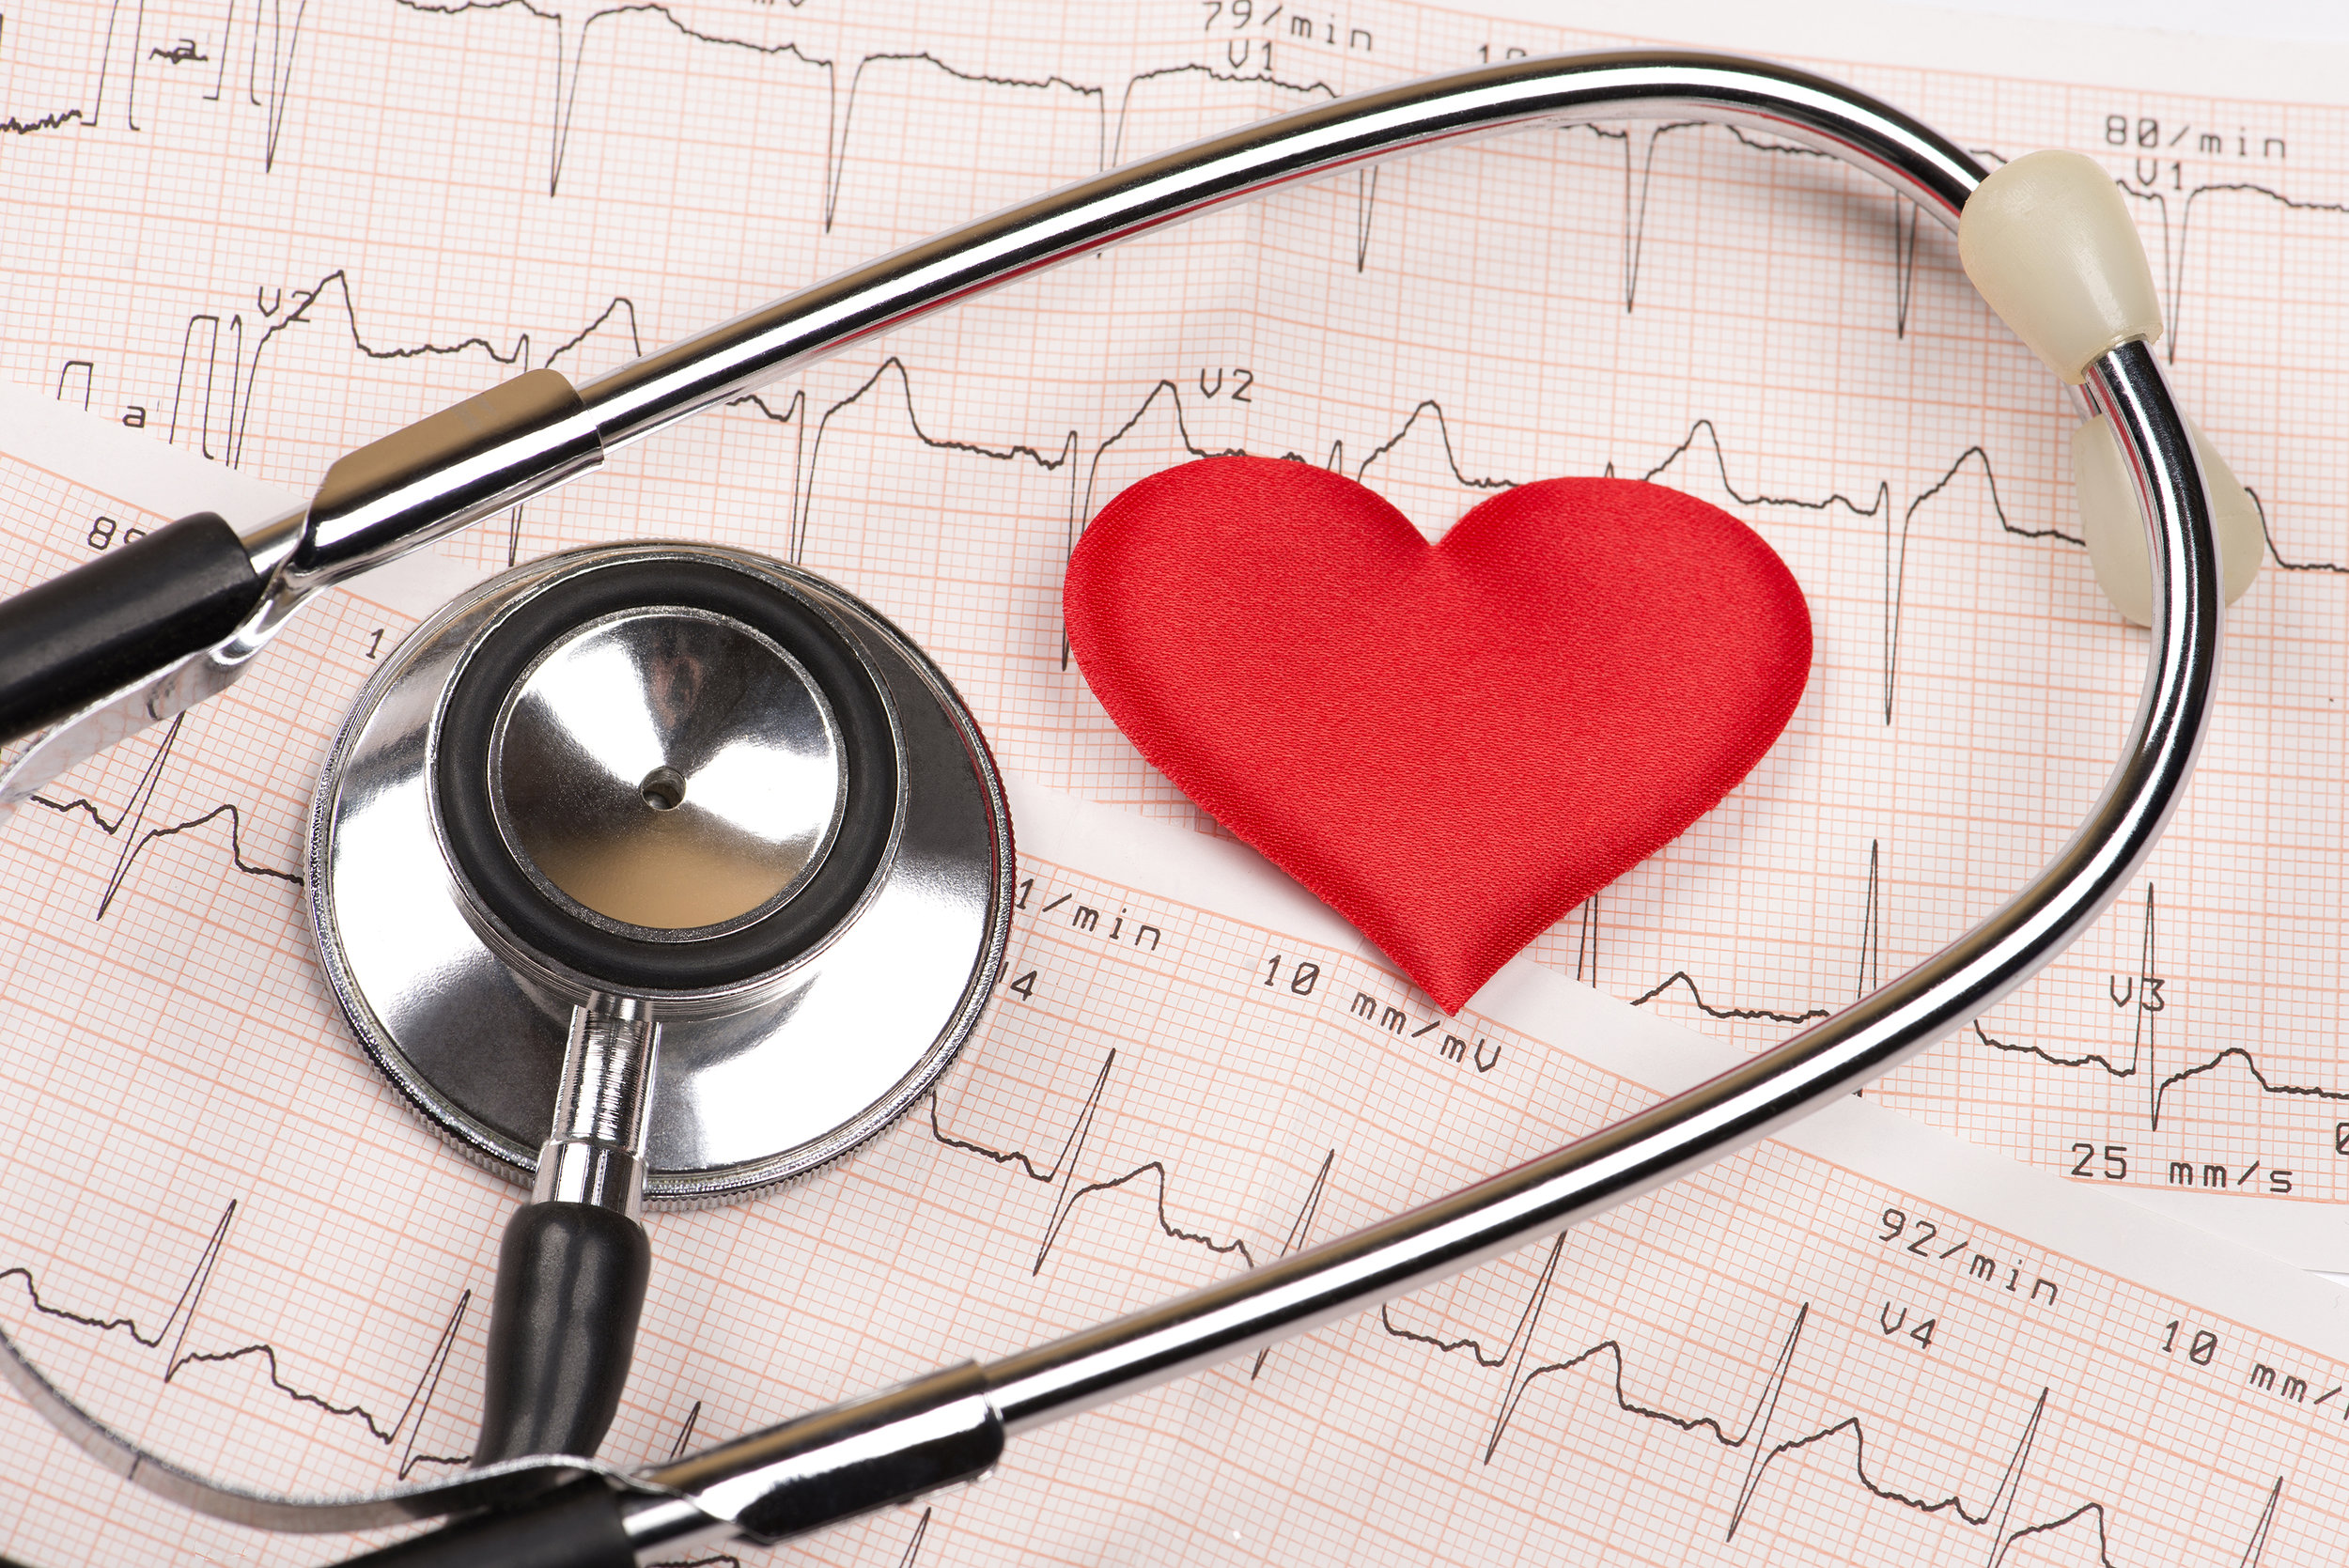 cardiogram-chart-with-red-heart-and-stethoscope-P78HKPW.jpg